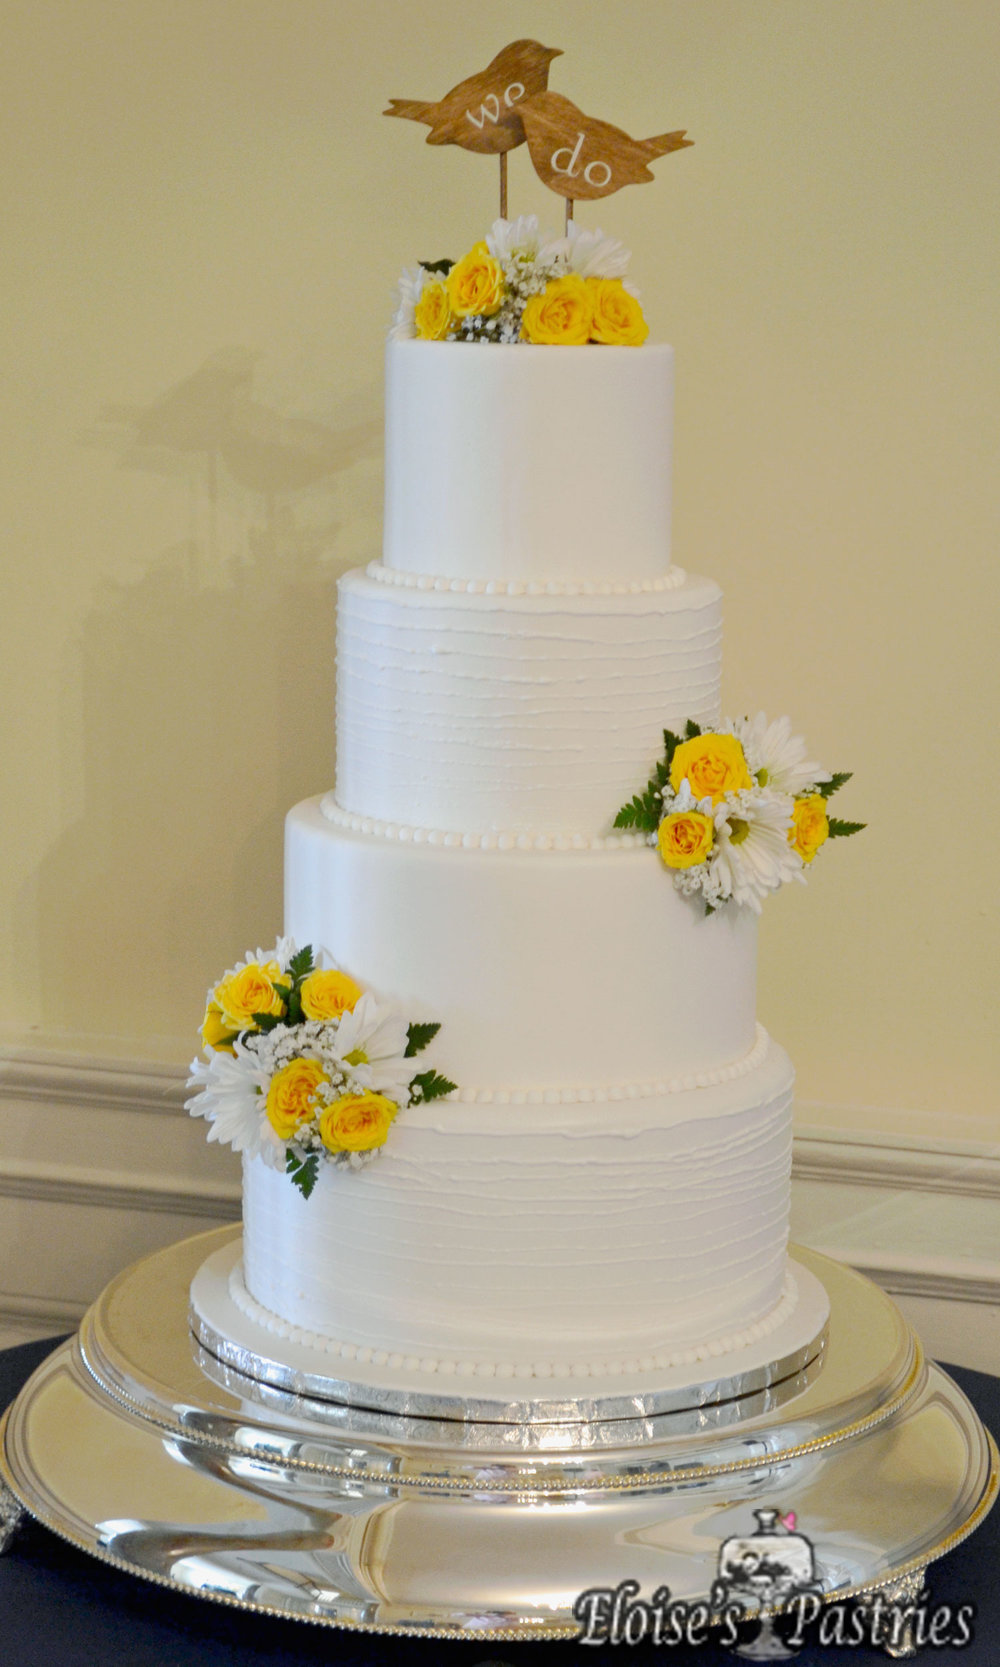 Simple White Floral Cake